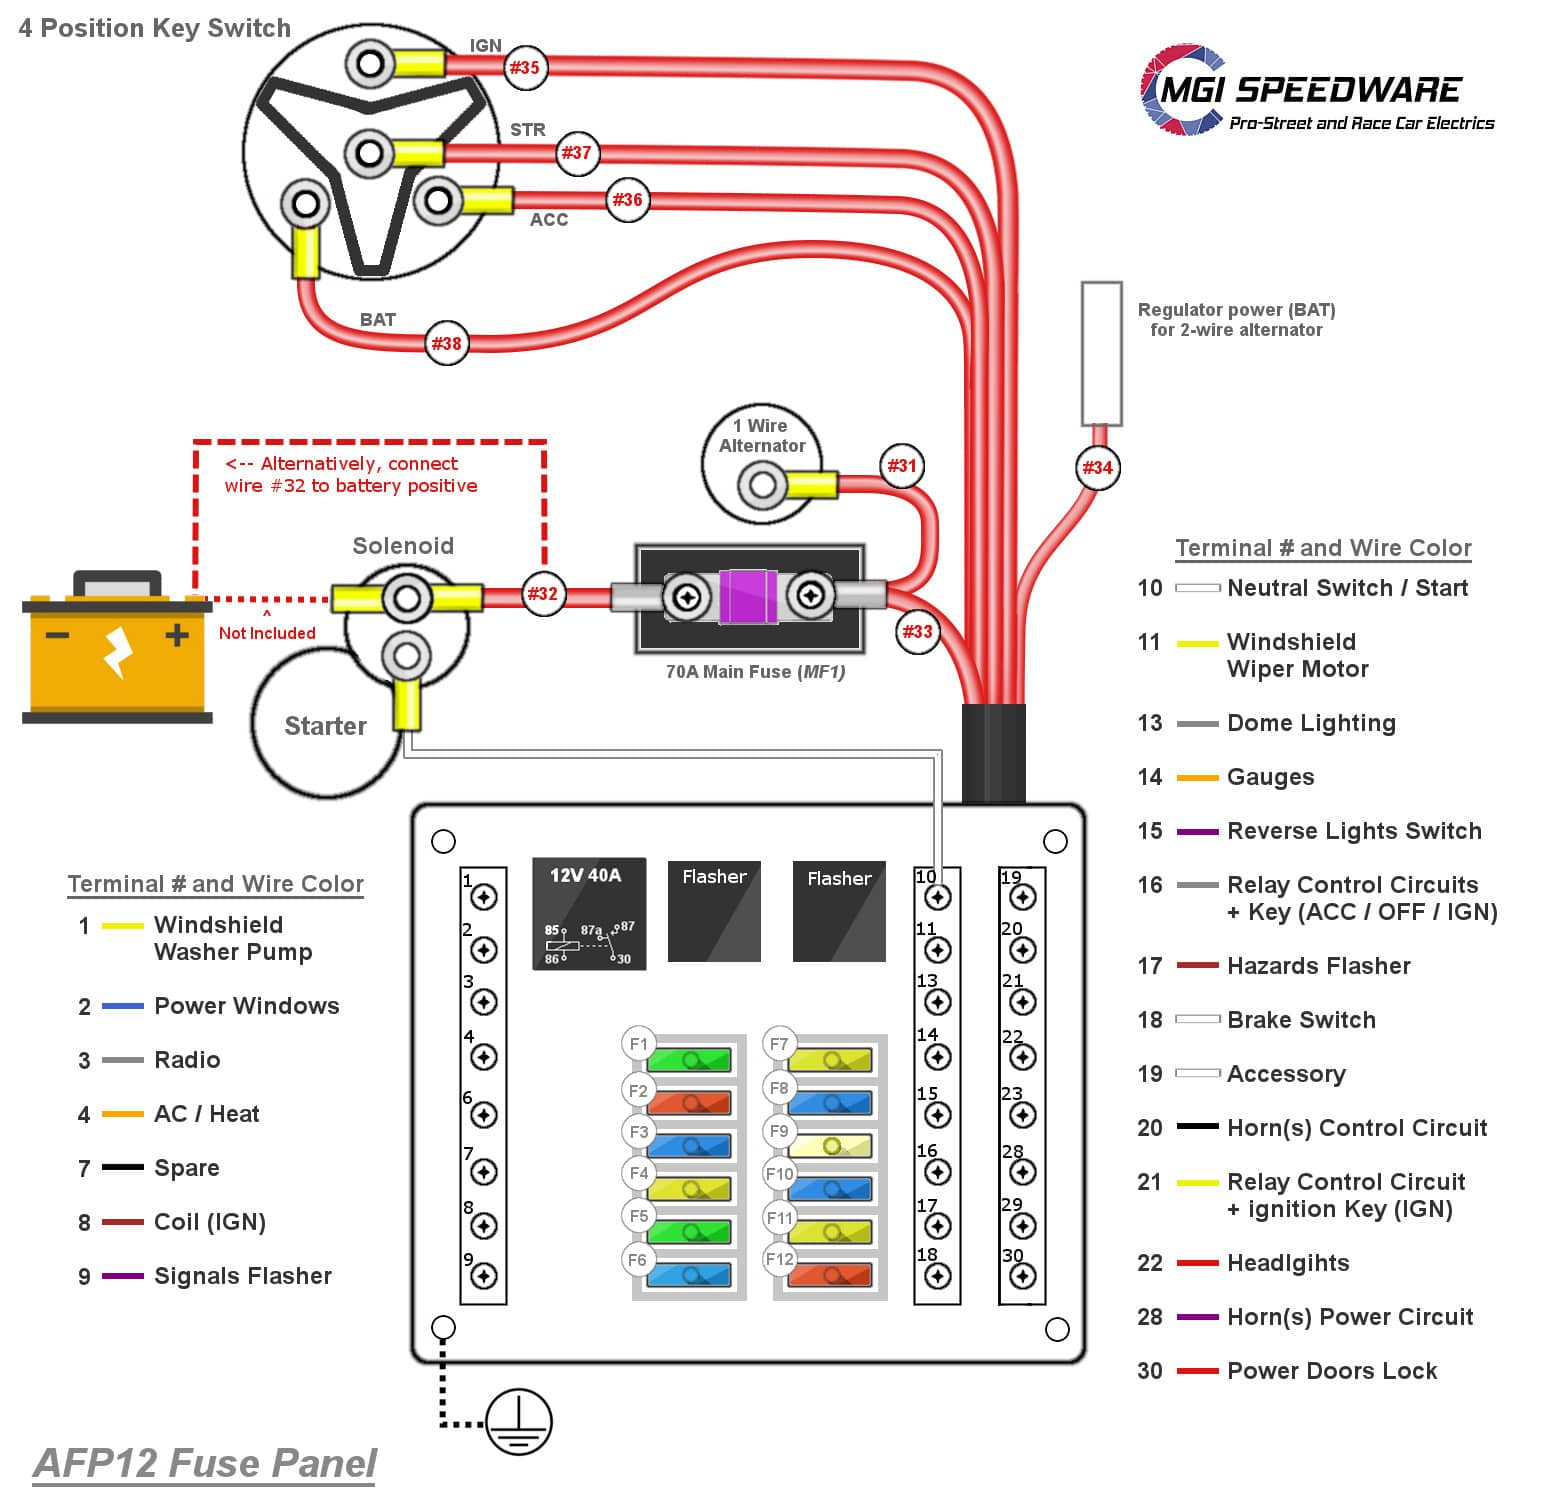 Wylex Fuse Box Manual - Leeson 3hp Electric Motor Wiring Diagram -  wiring.1997wir.jeanjaures37.fr | Wylex Fuse Box Manual |  | Wiring Diagram Resource